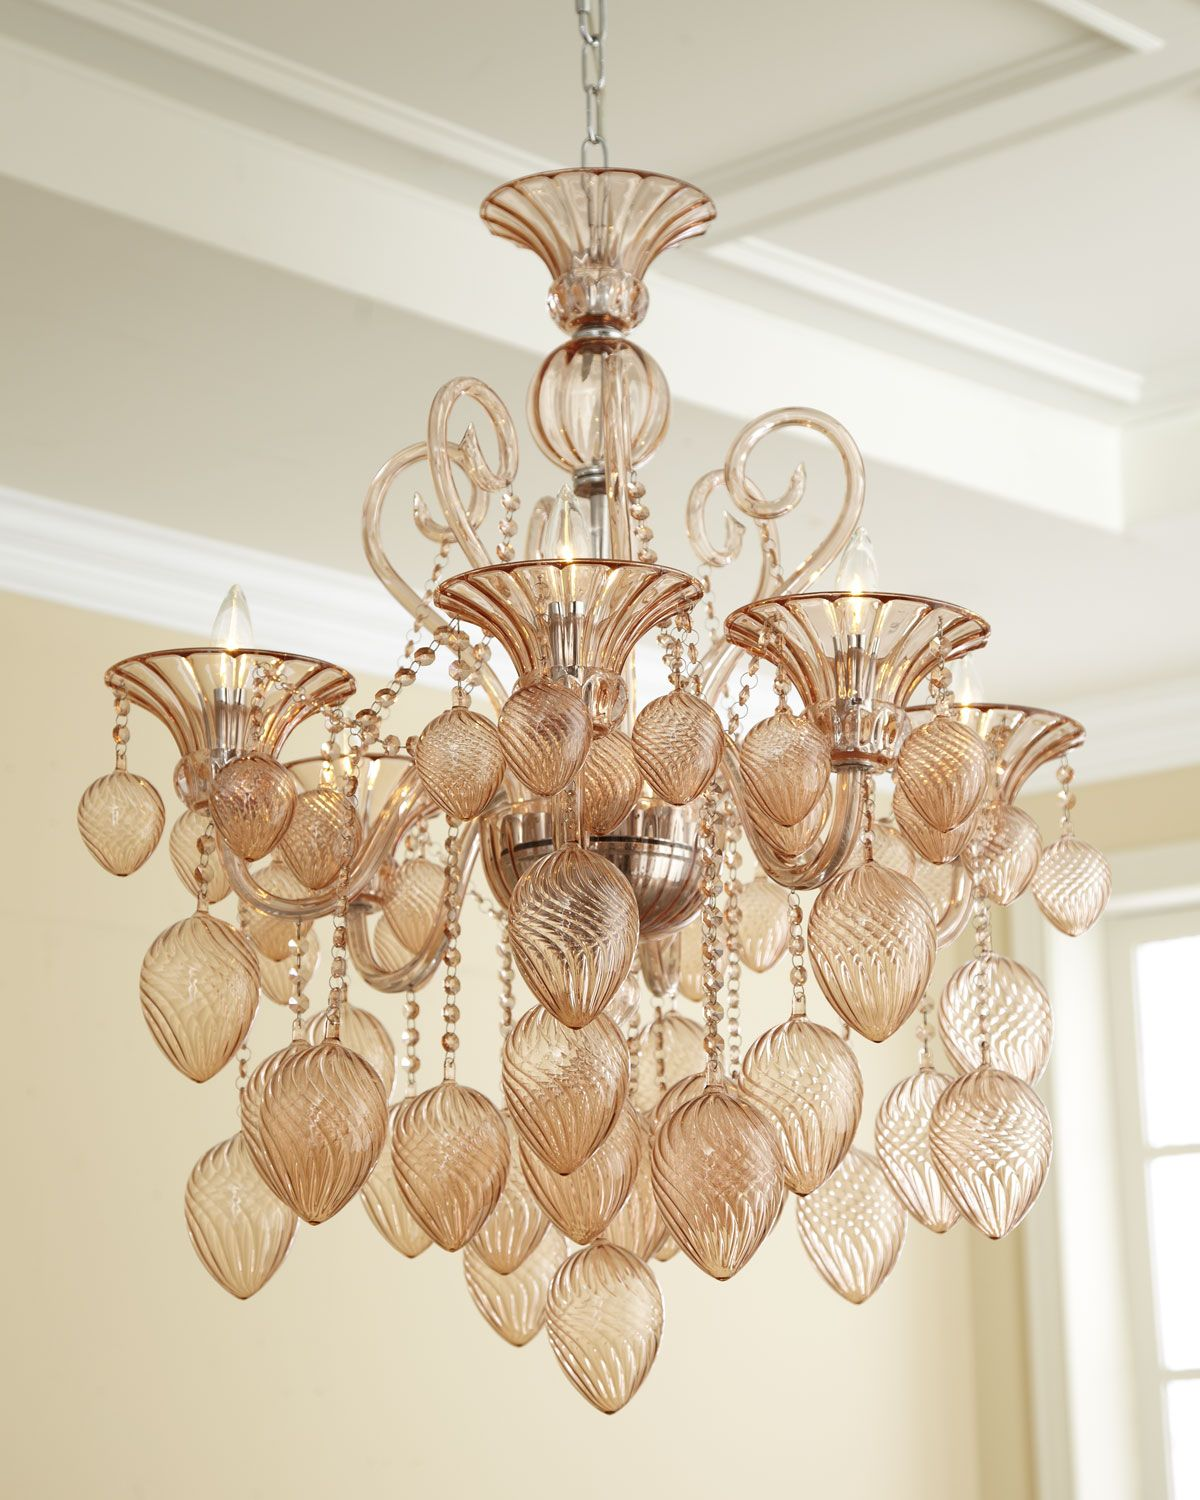 horchow lighting chandeliers. Blush 6-Light Chandelier Horchow Lighting Chandeliers N